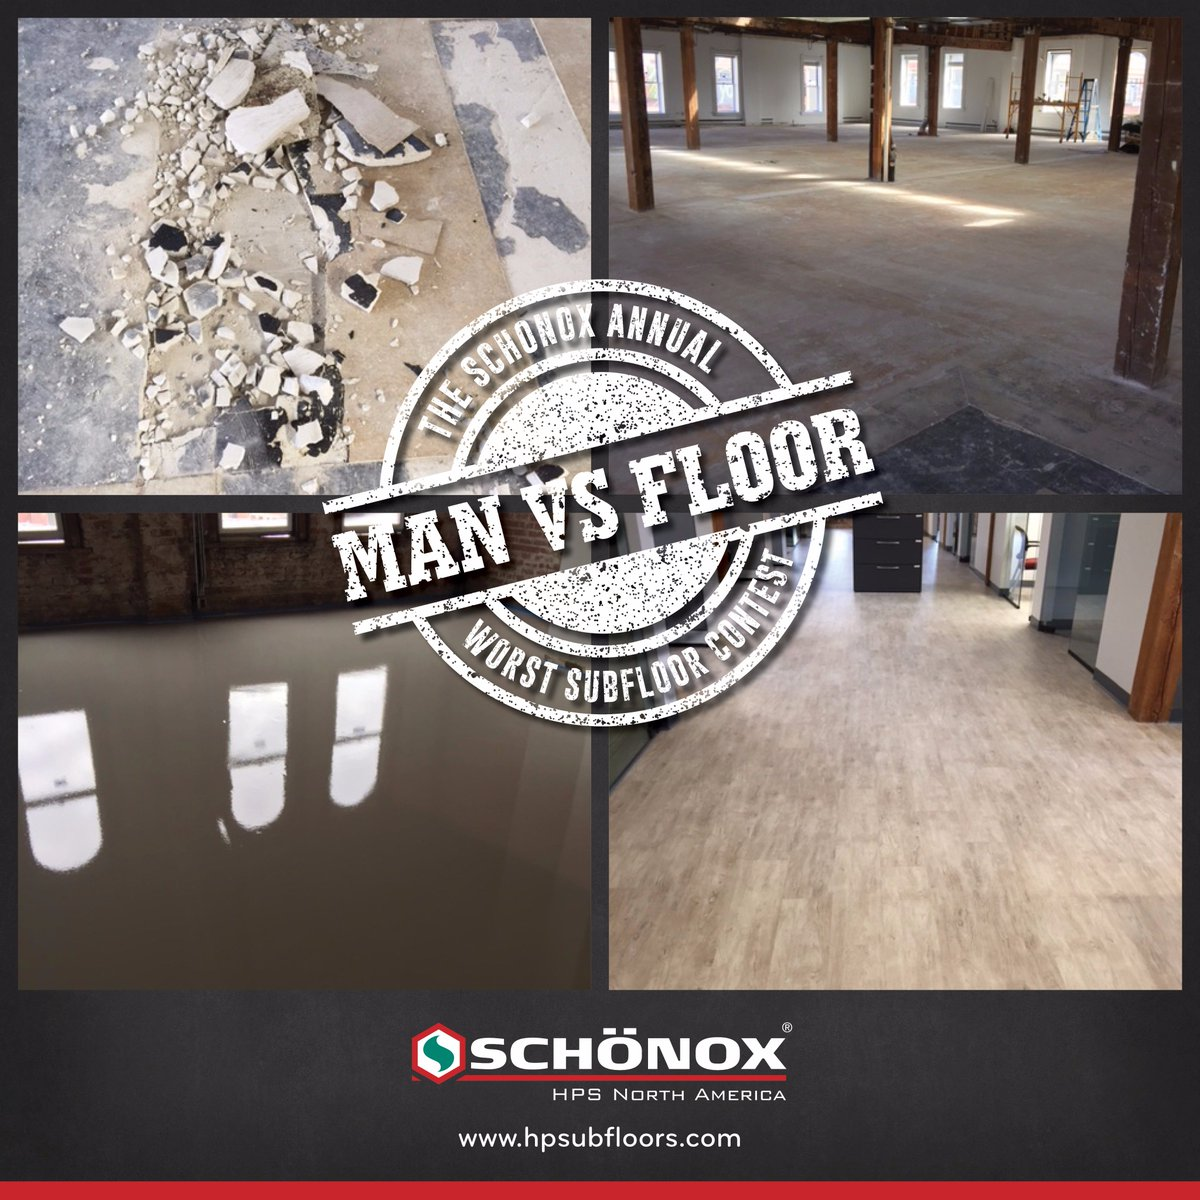 Shocking to see before &amp; after pics from this project. Your damaged floors deserve this repair too! #worstsubfloor #renovation #bestoftheday <br>http://pic.twitter.com/g1jAmwQDdy